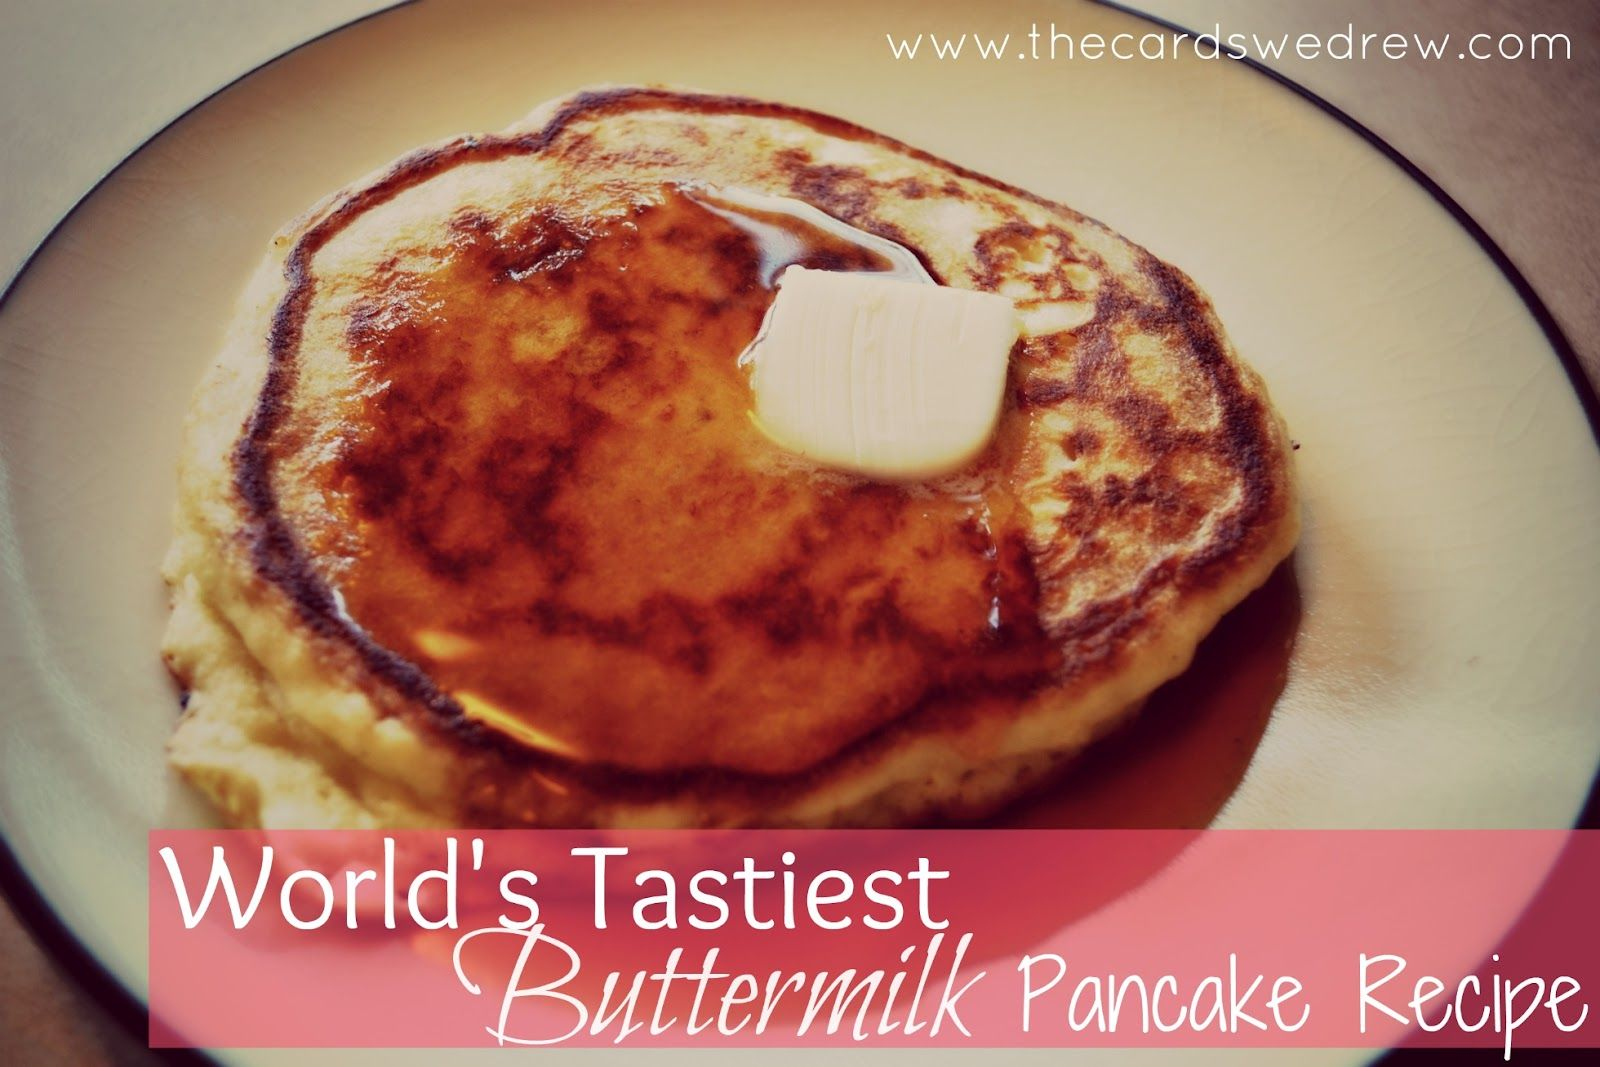 The Cards We Drew World S Tastiest Buttermilk Pancake Recipe Pancake Recipe Buttermilk Pancake Recipe Buttermilk Pancakes